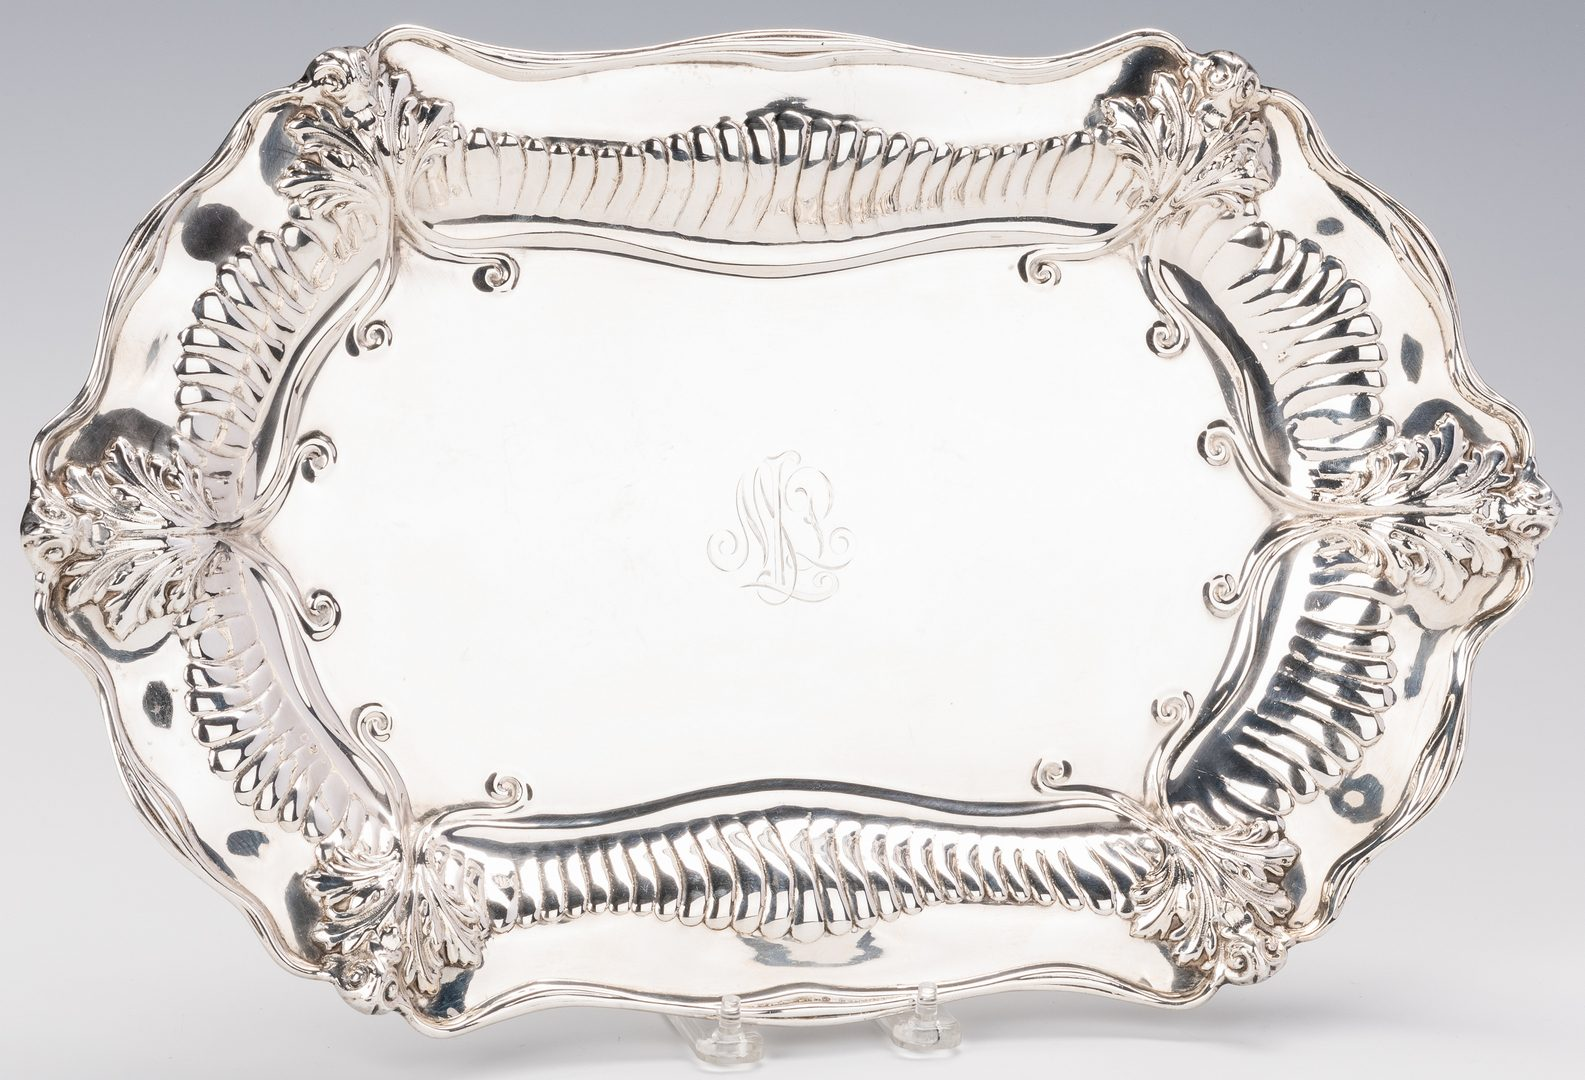 Lot 697: Dominick and Haff Sterling Tray